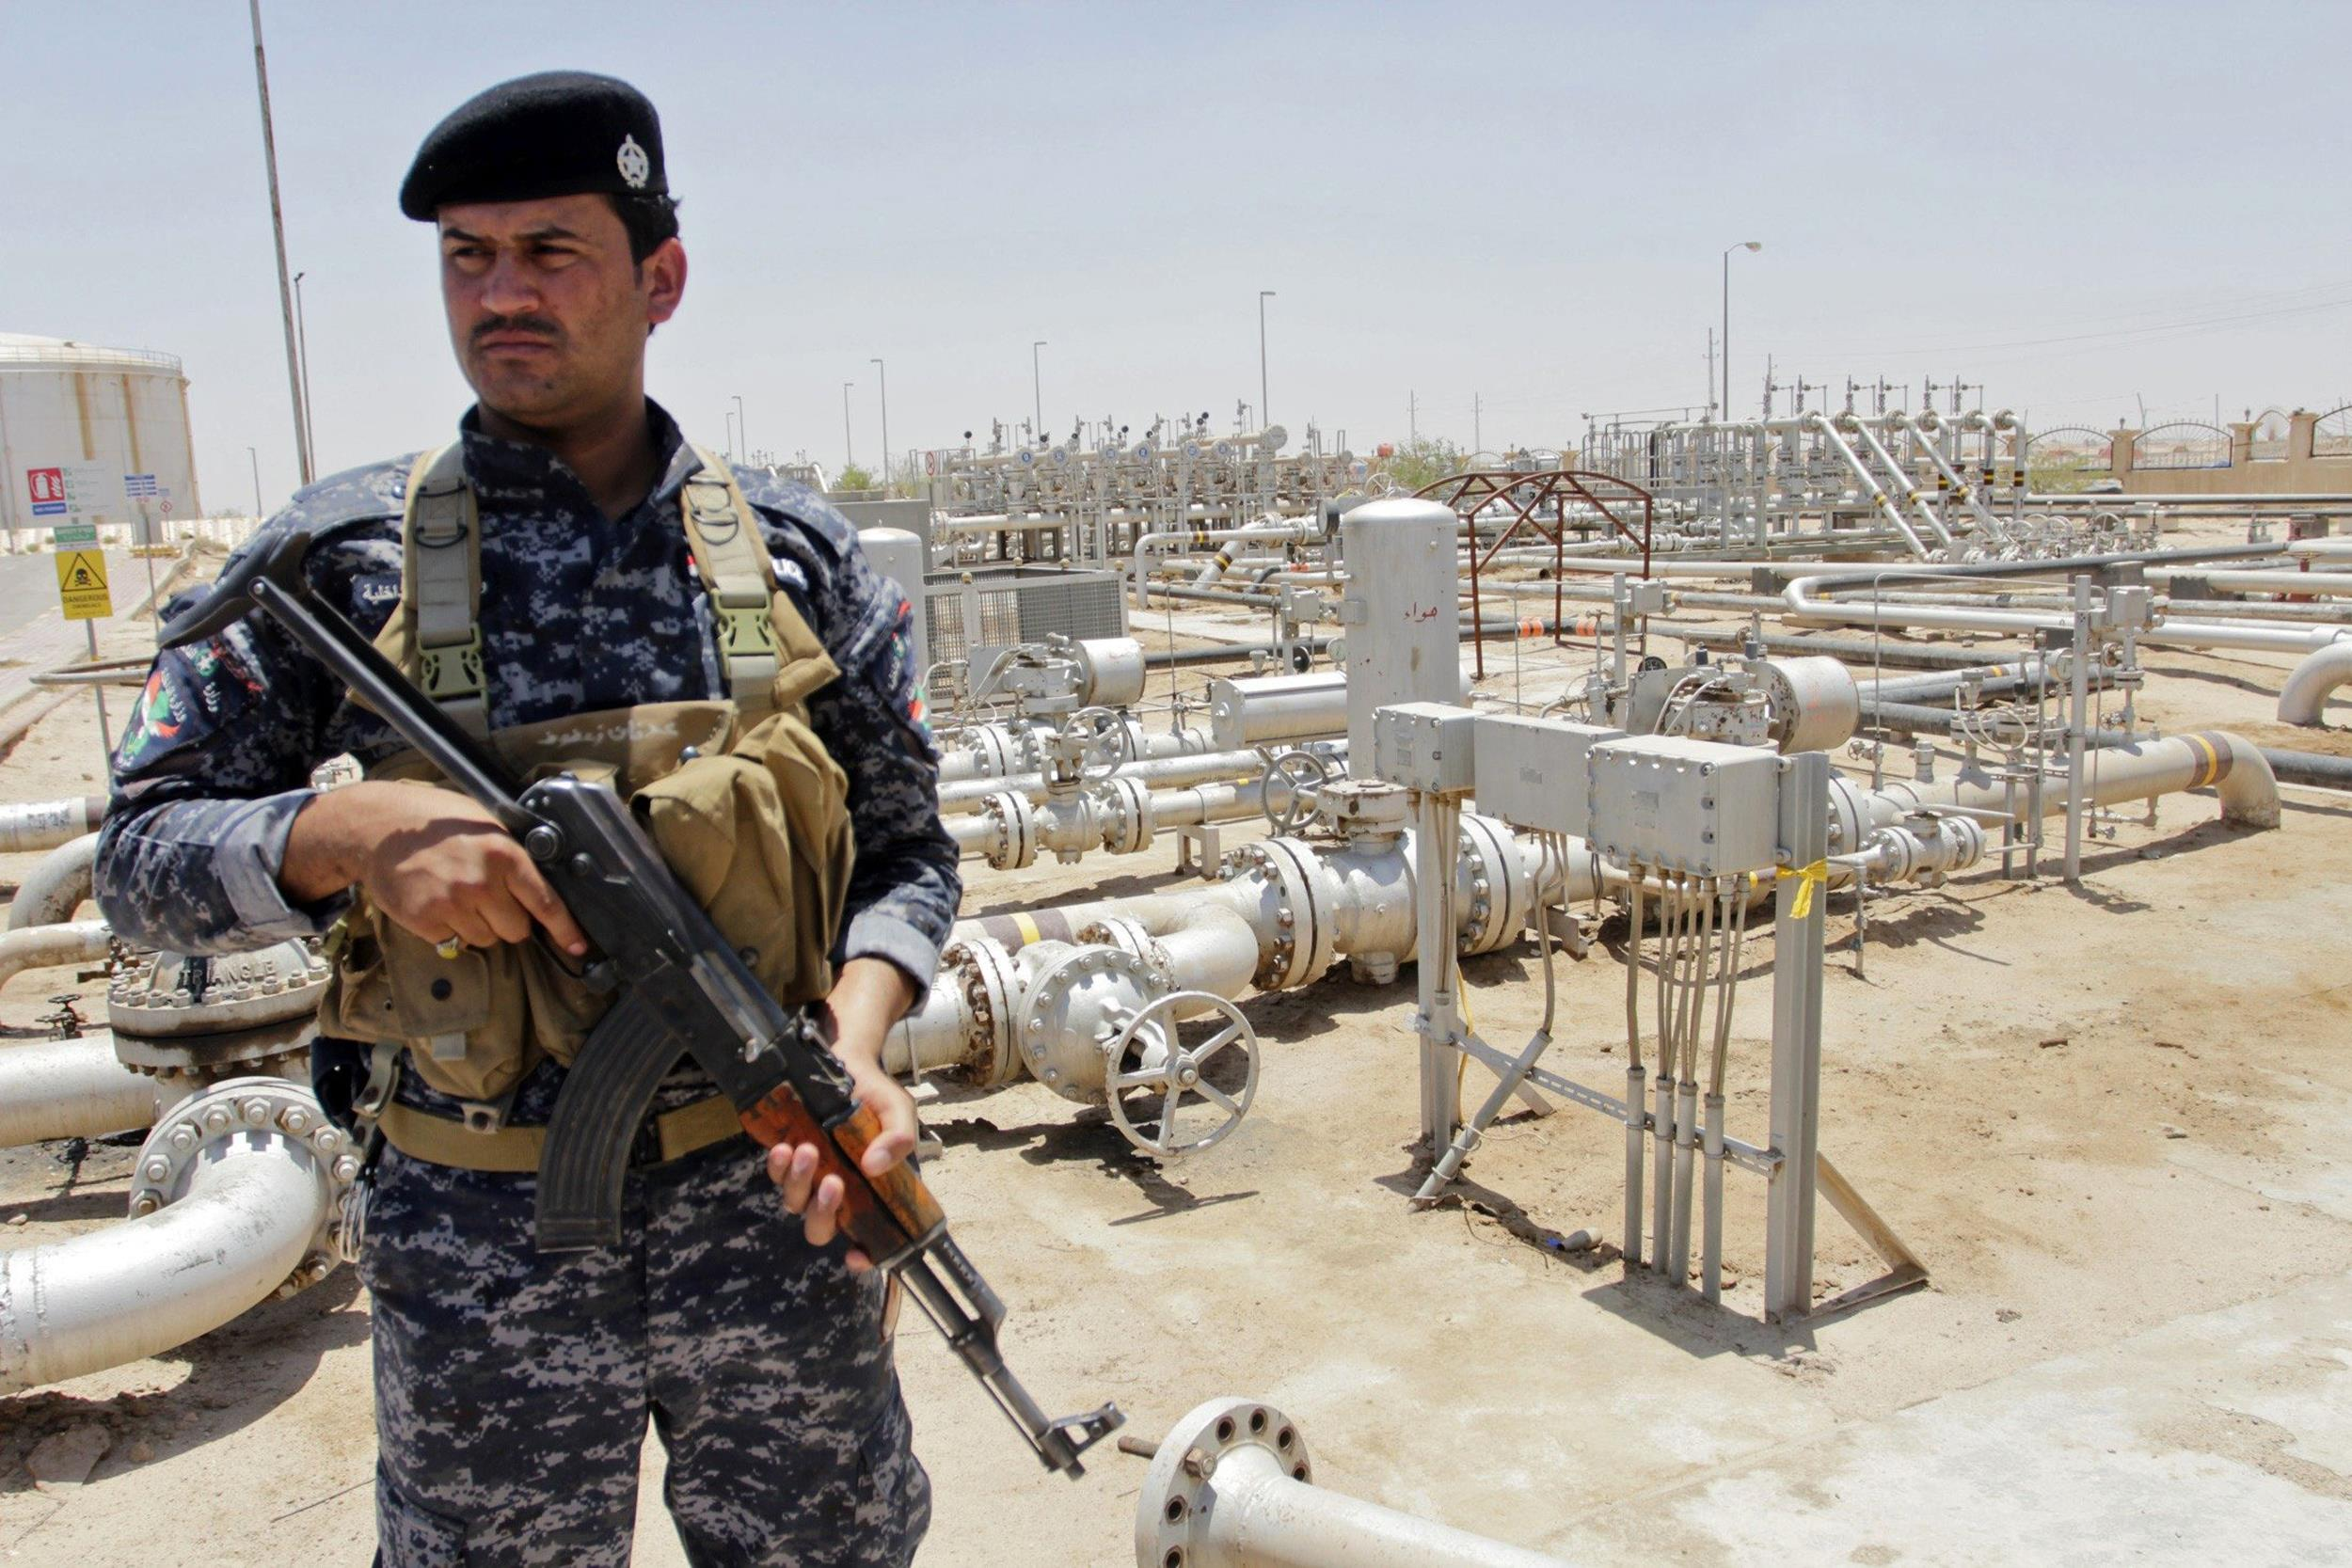 Image: A member from oil police force stands guard at Zubair oilfield in Basra, southeast of Baghdad